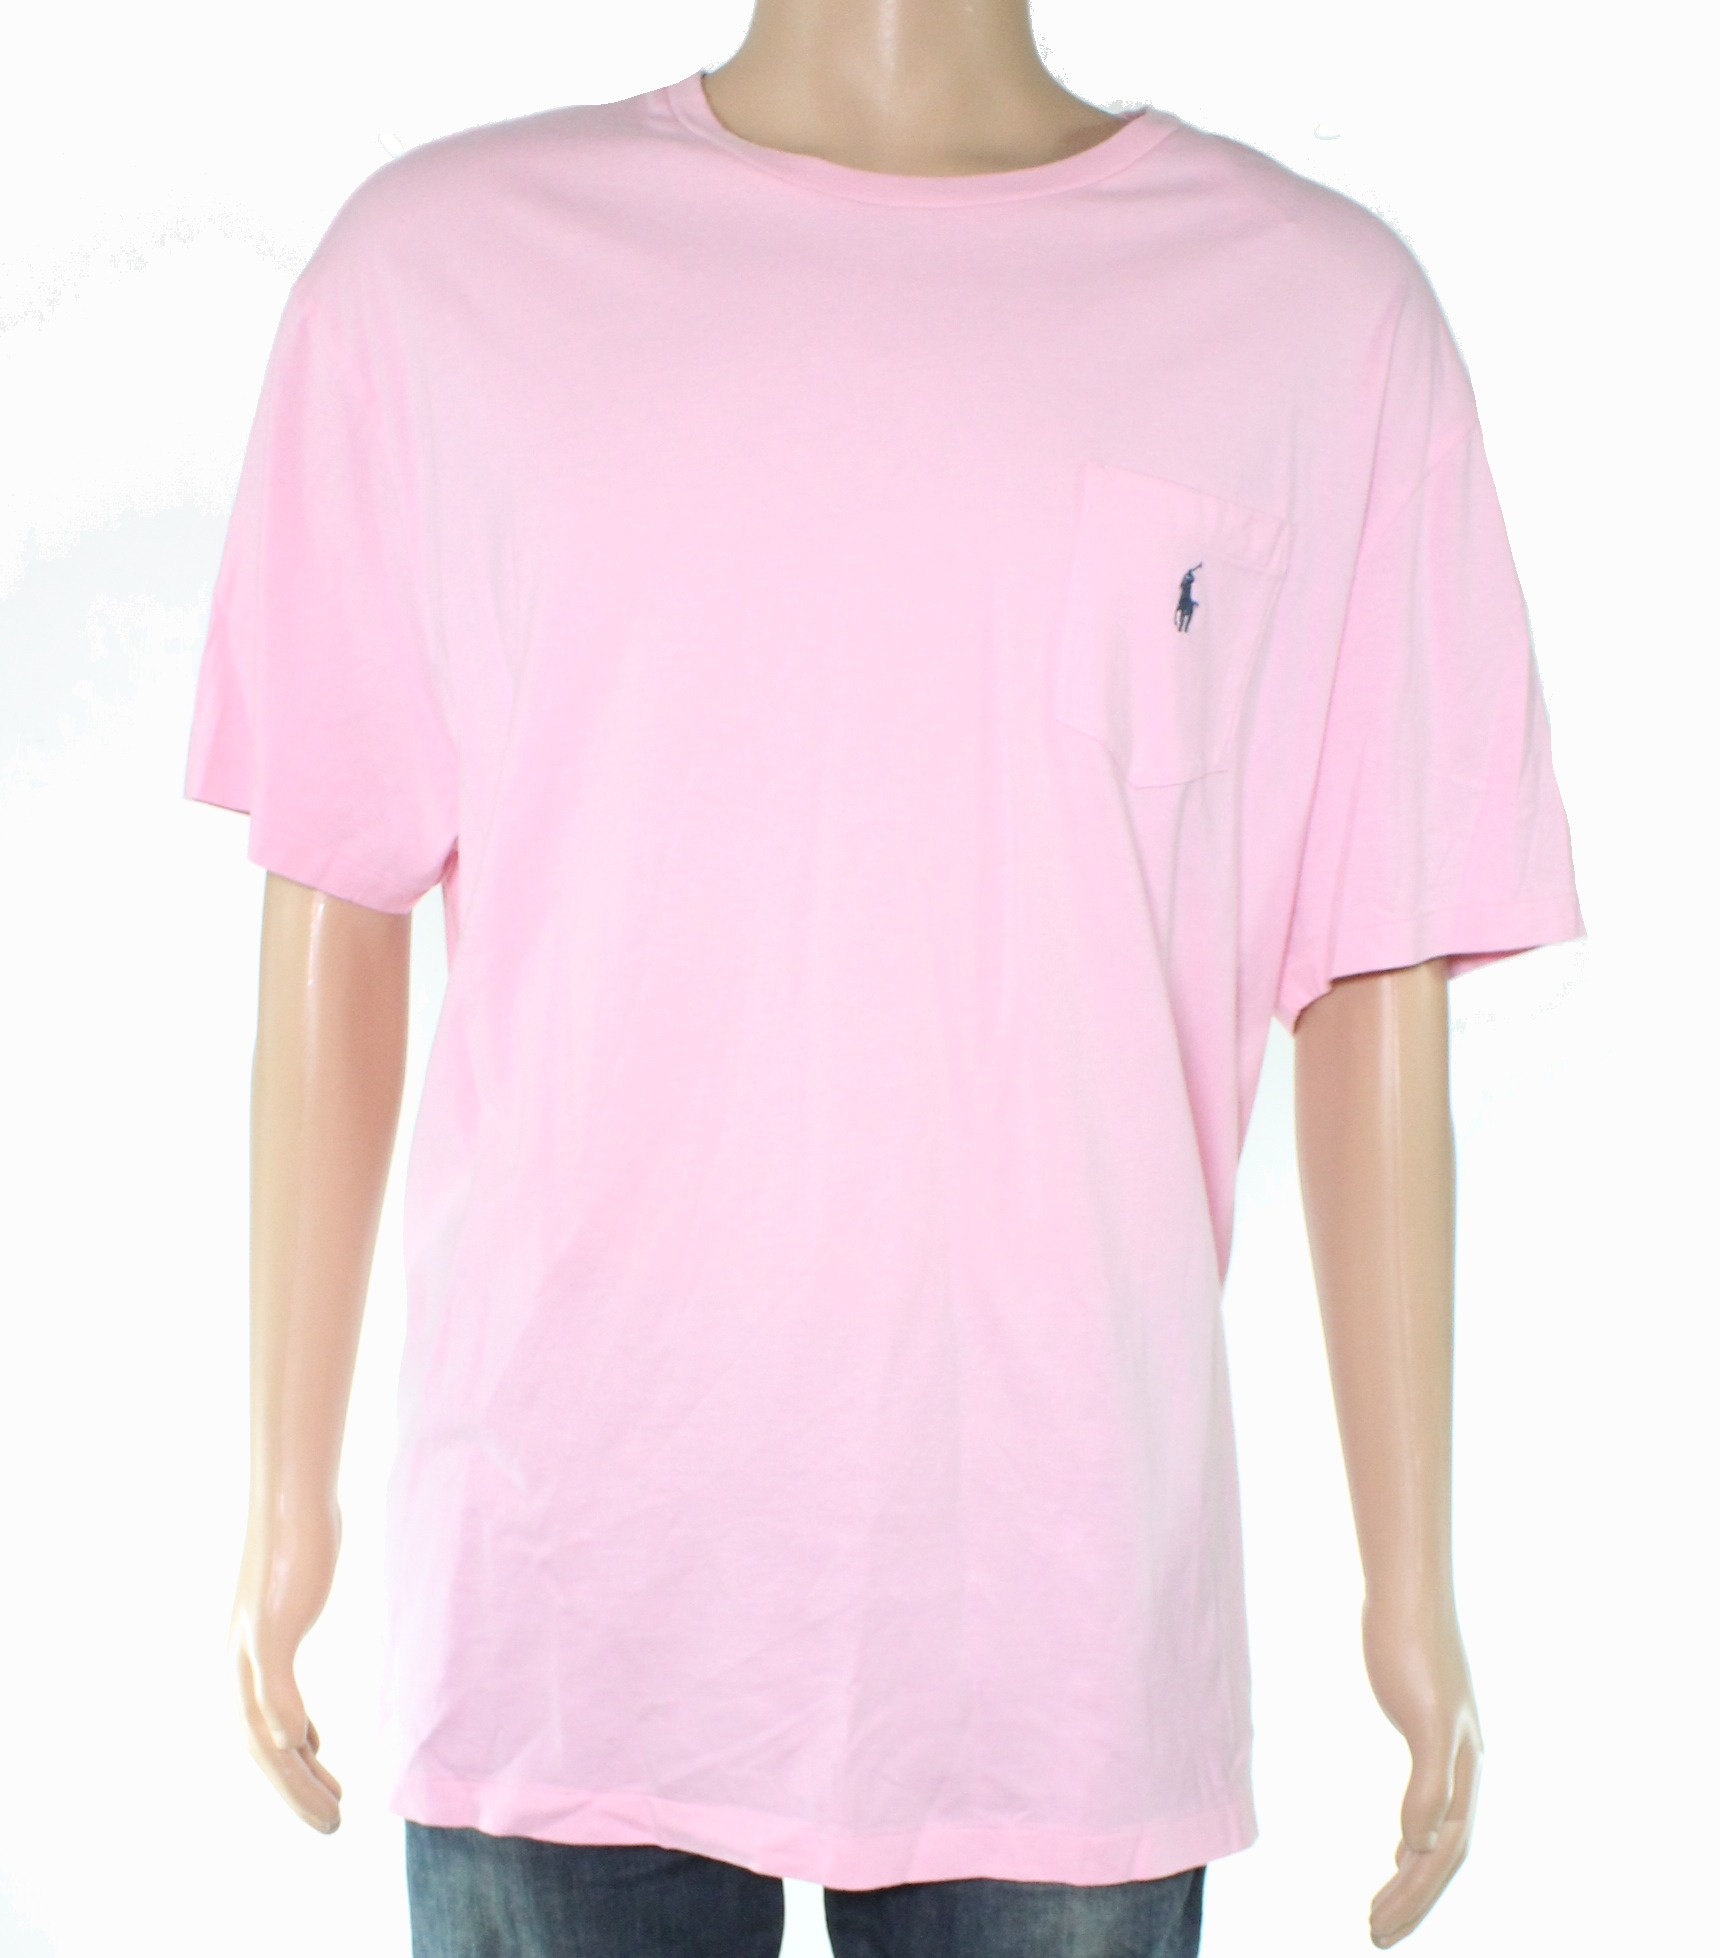 New-Polo-Ralph-Lauren-Mens-T-Shirt-Pink-Size-Large-L-Tee-Classic-Fit-39-210